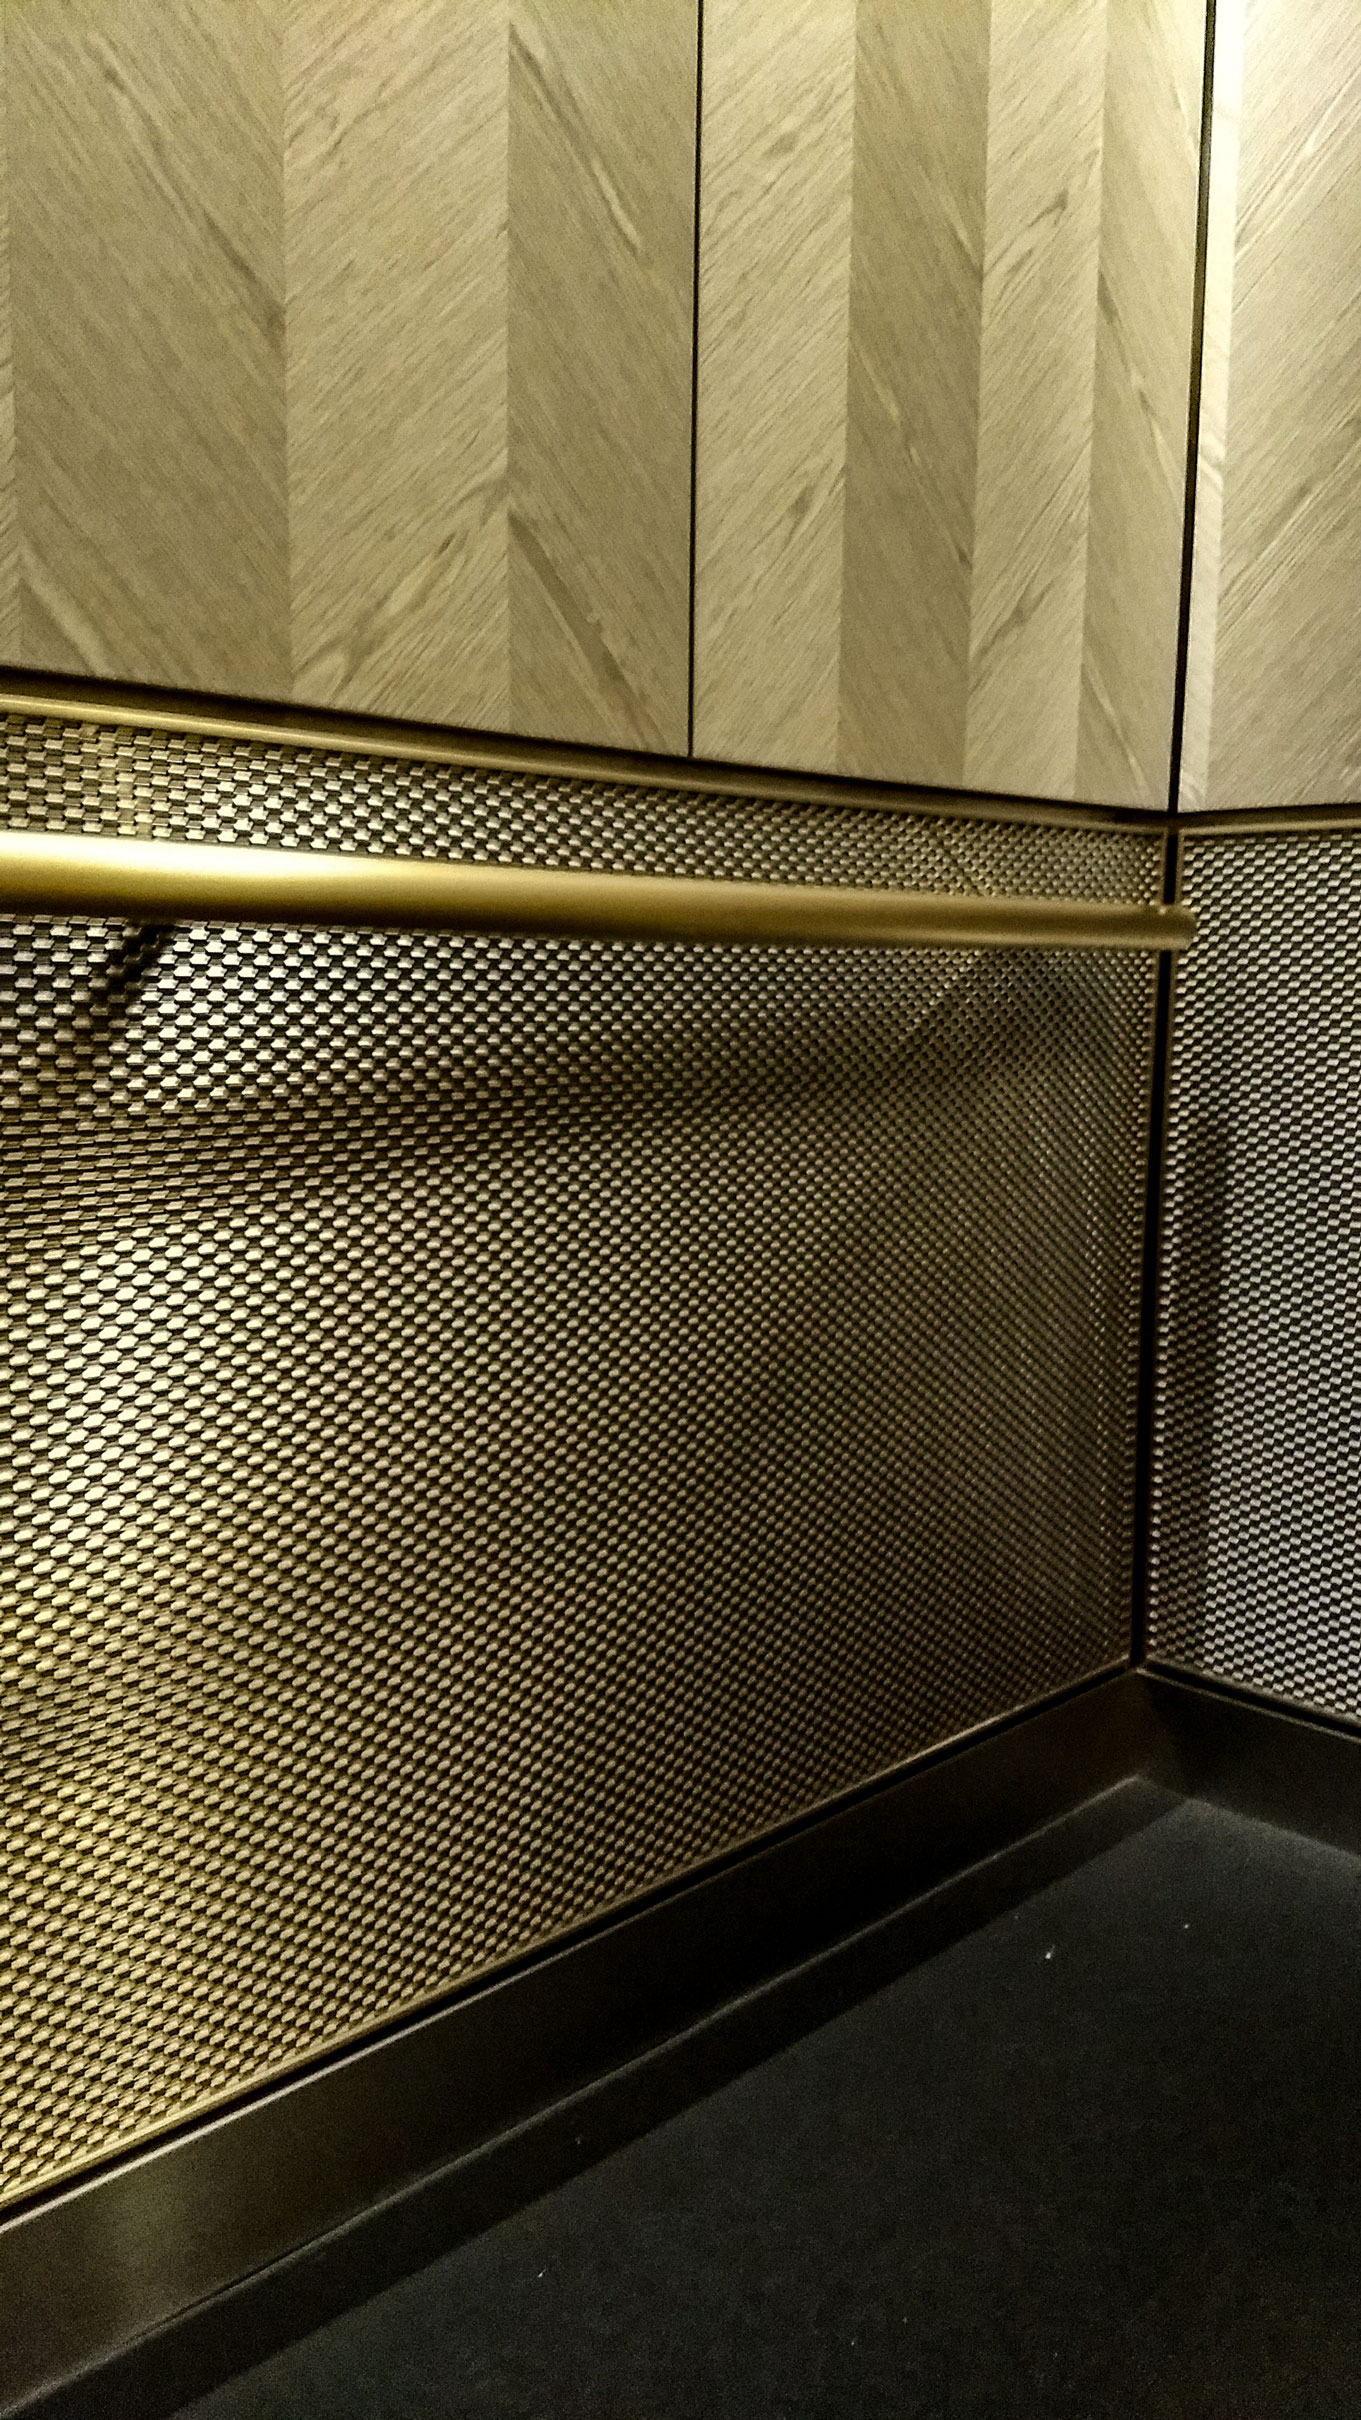 DS-1 is a beautiful contrast to the grey herringbone patterned wood veneer used on the upper wall panels of the elevator.